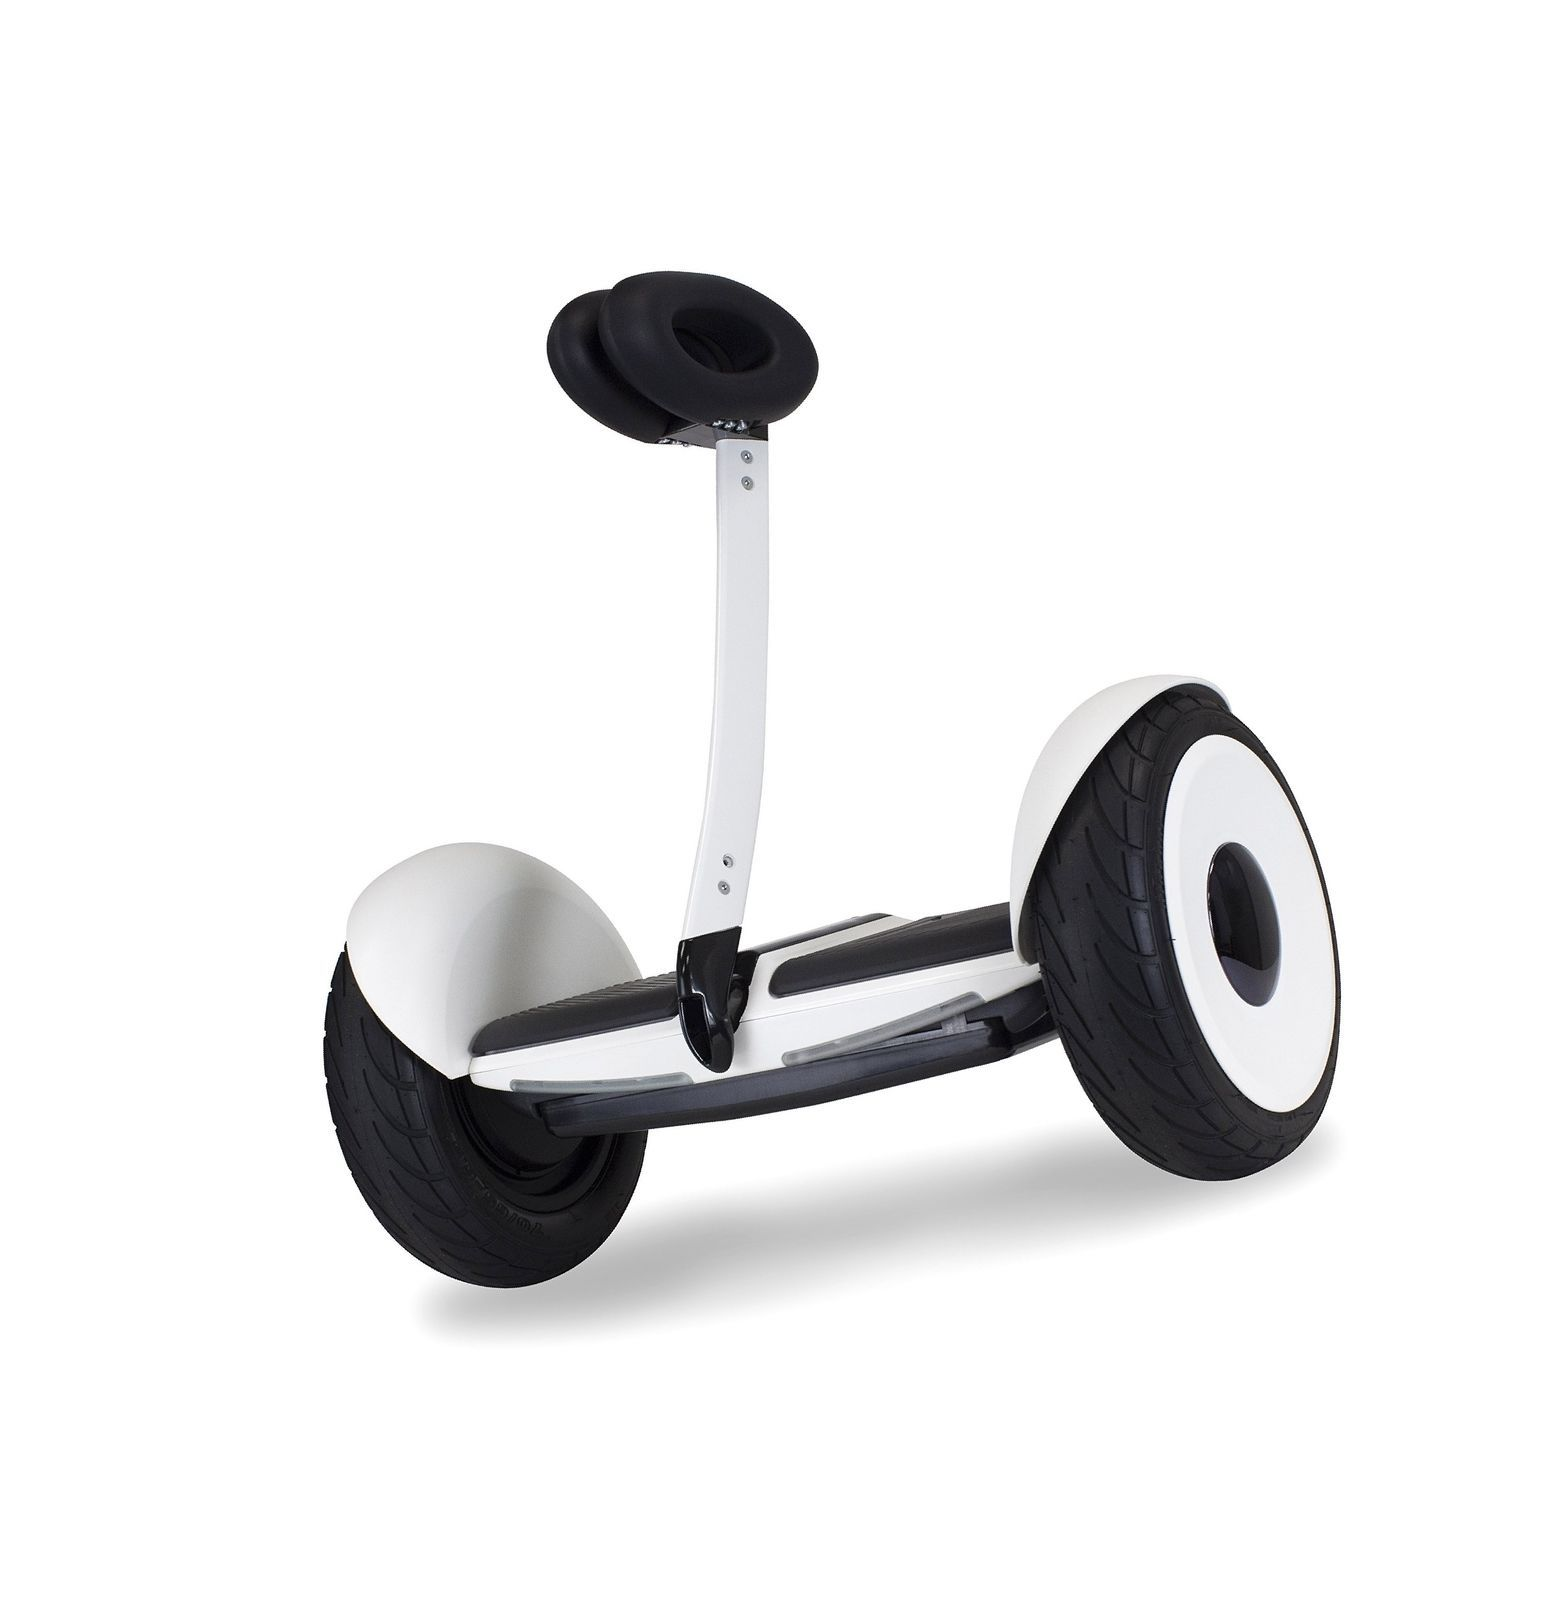 Segway miniLITE - Smart Self Balancing Personal Transporter - Fully Integrate...